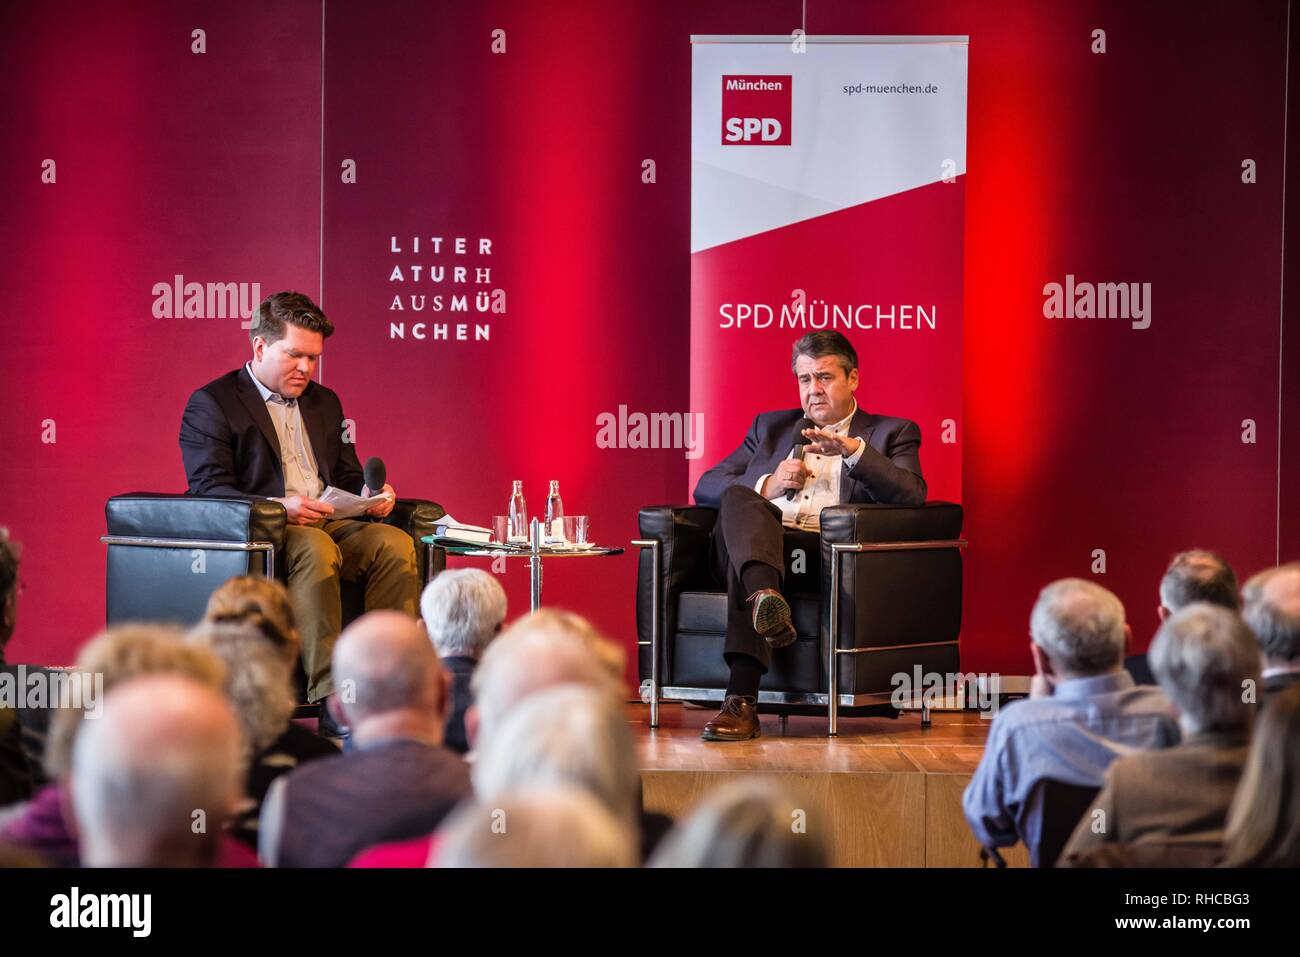 Munich, Bavaria, Germany. 2nd Feb, 2019. In support of his new book Zeitenwende in der Politik, the former German Foreign Minister and Vice Chancellor SIGMAR GABRIEL appeared in Munich with fellow SPD Bundestag member Florian Post. Gabriel and Post discussed topics including the questions around the US partnership with Europe where the former no longer feels responsible for the security of the latter. Further topics included a lack of cohesion of the European Union, NATO, right-radicalism, and China. Gabriel withdrew from his position as Foreign Minister in 2018 and since the right-extr - Stock Image